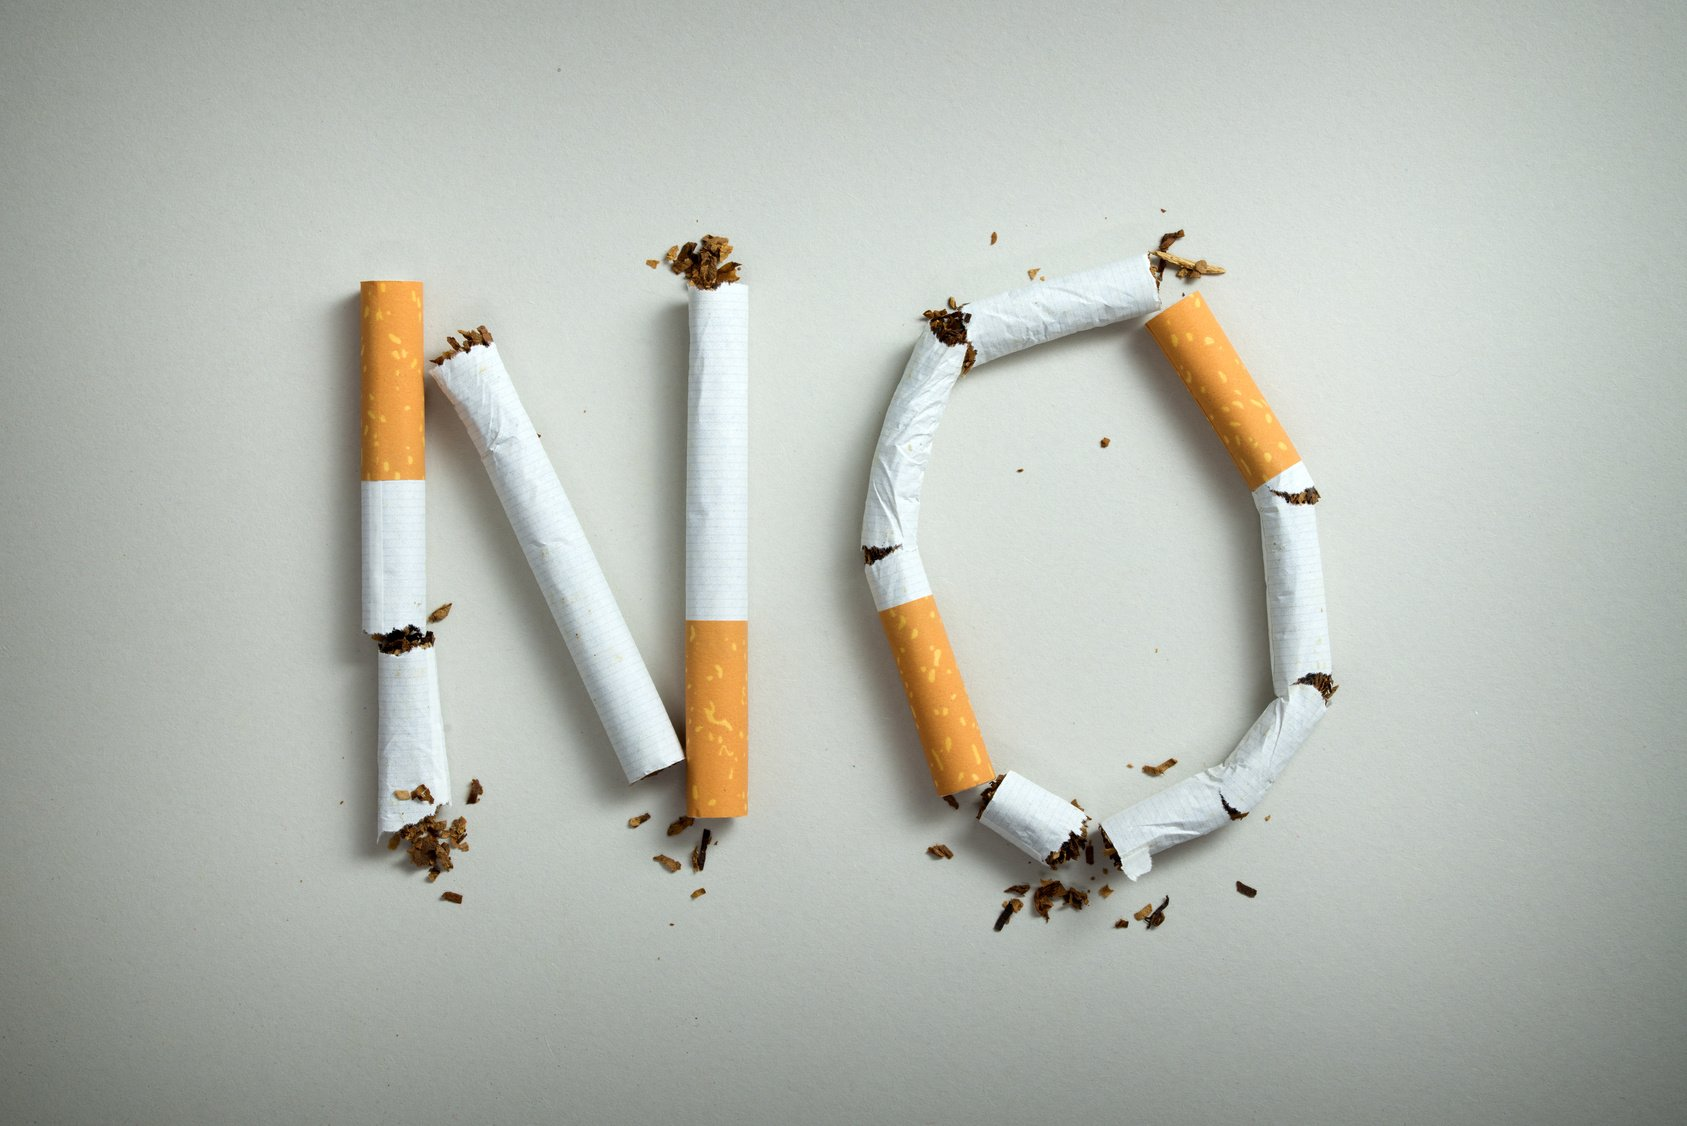 Smoking And IVF, Why The Two Should Never Mix